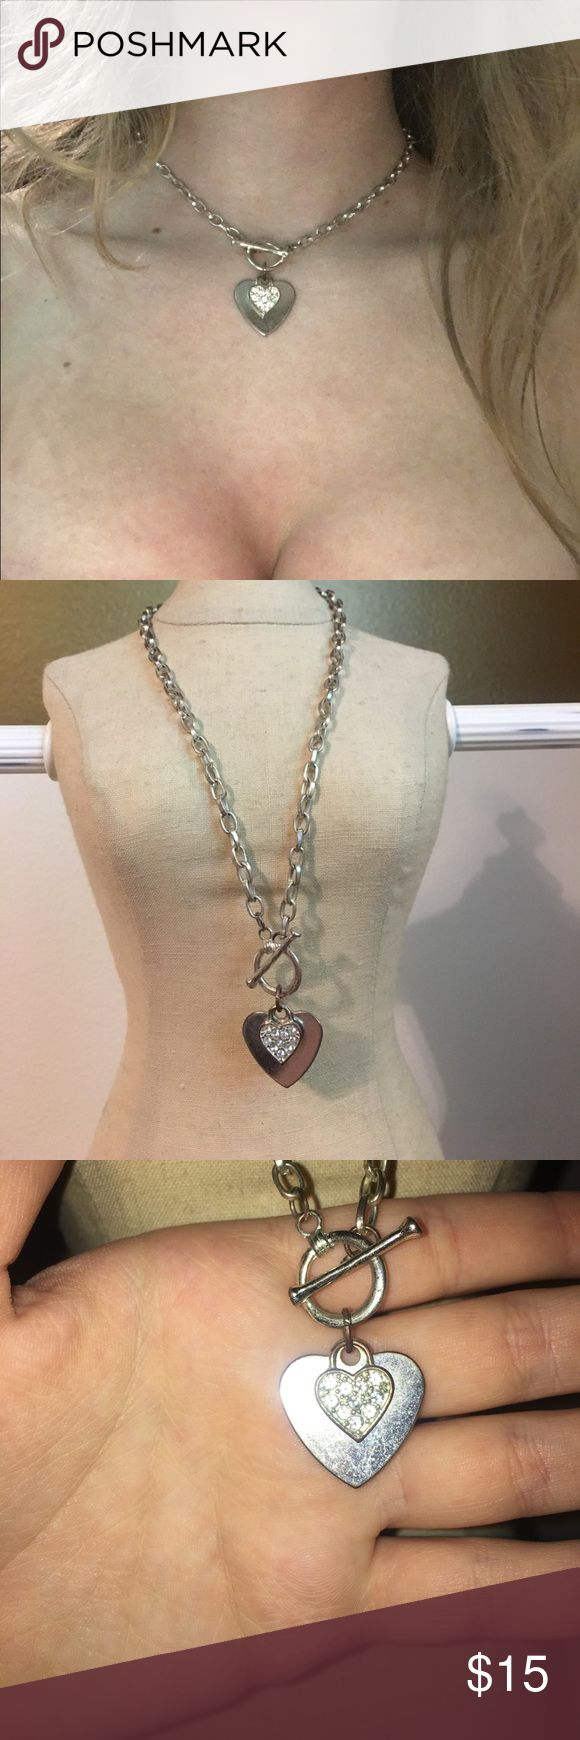 Silver Chain Heart Necklace Beautiful silver heart necklace with smaller diamond studded heart. Hits at the collarbone for a flattering finish to any outfit Jewelry Necklaces